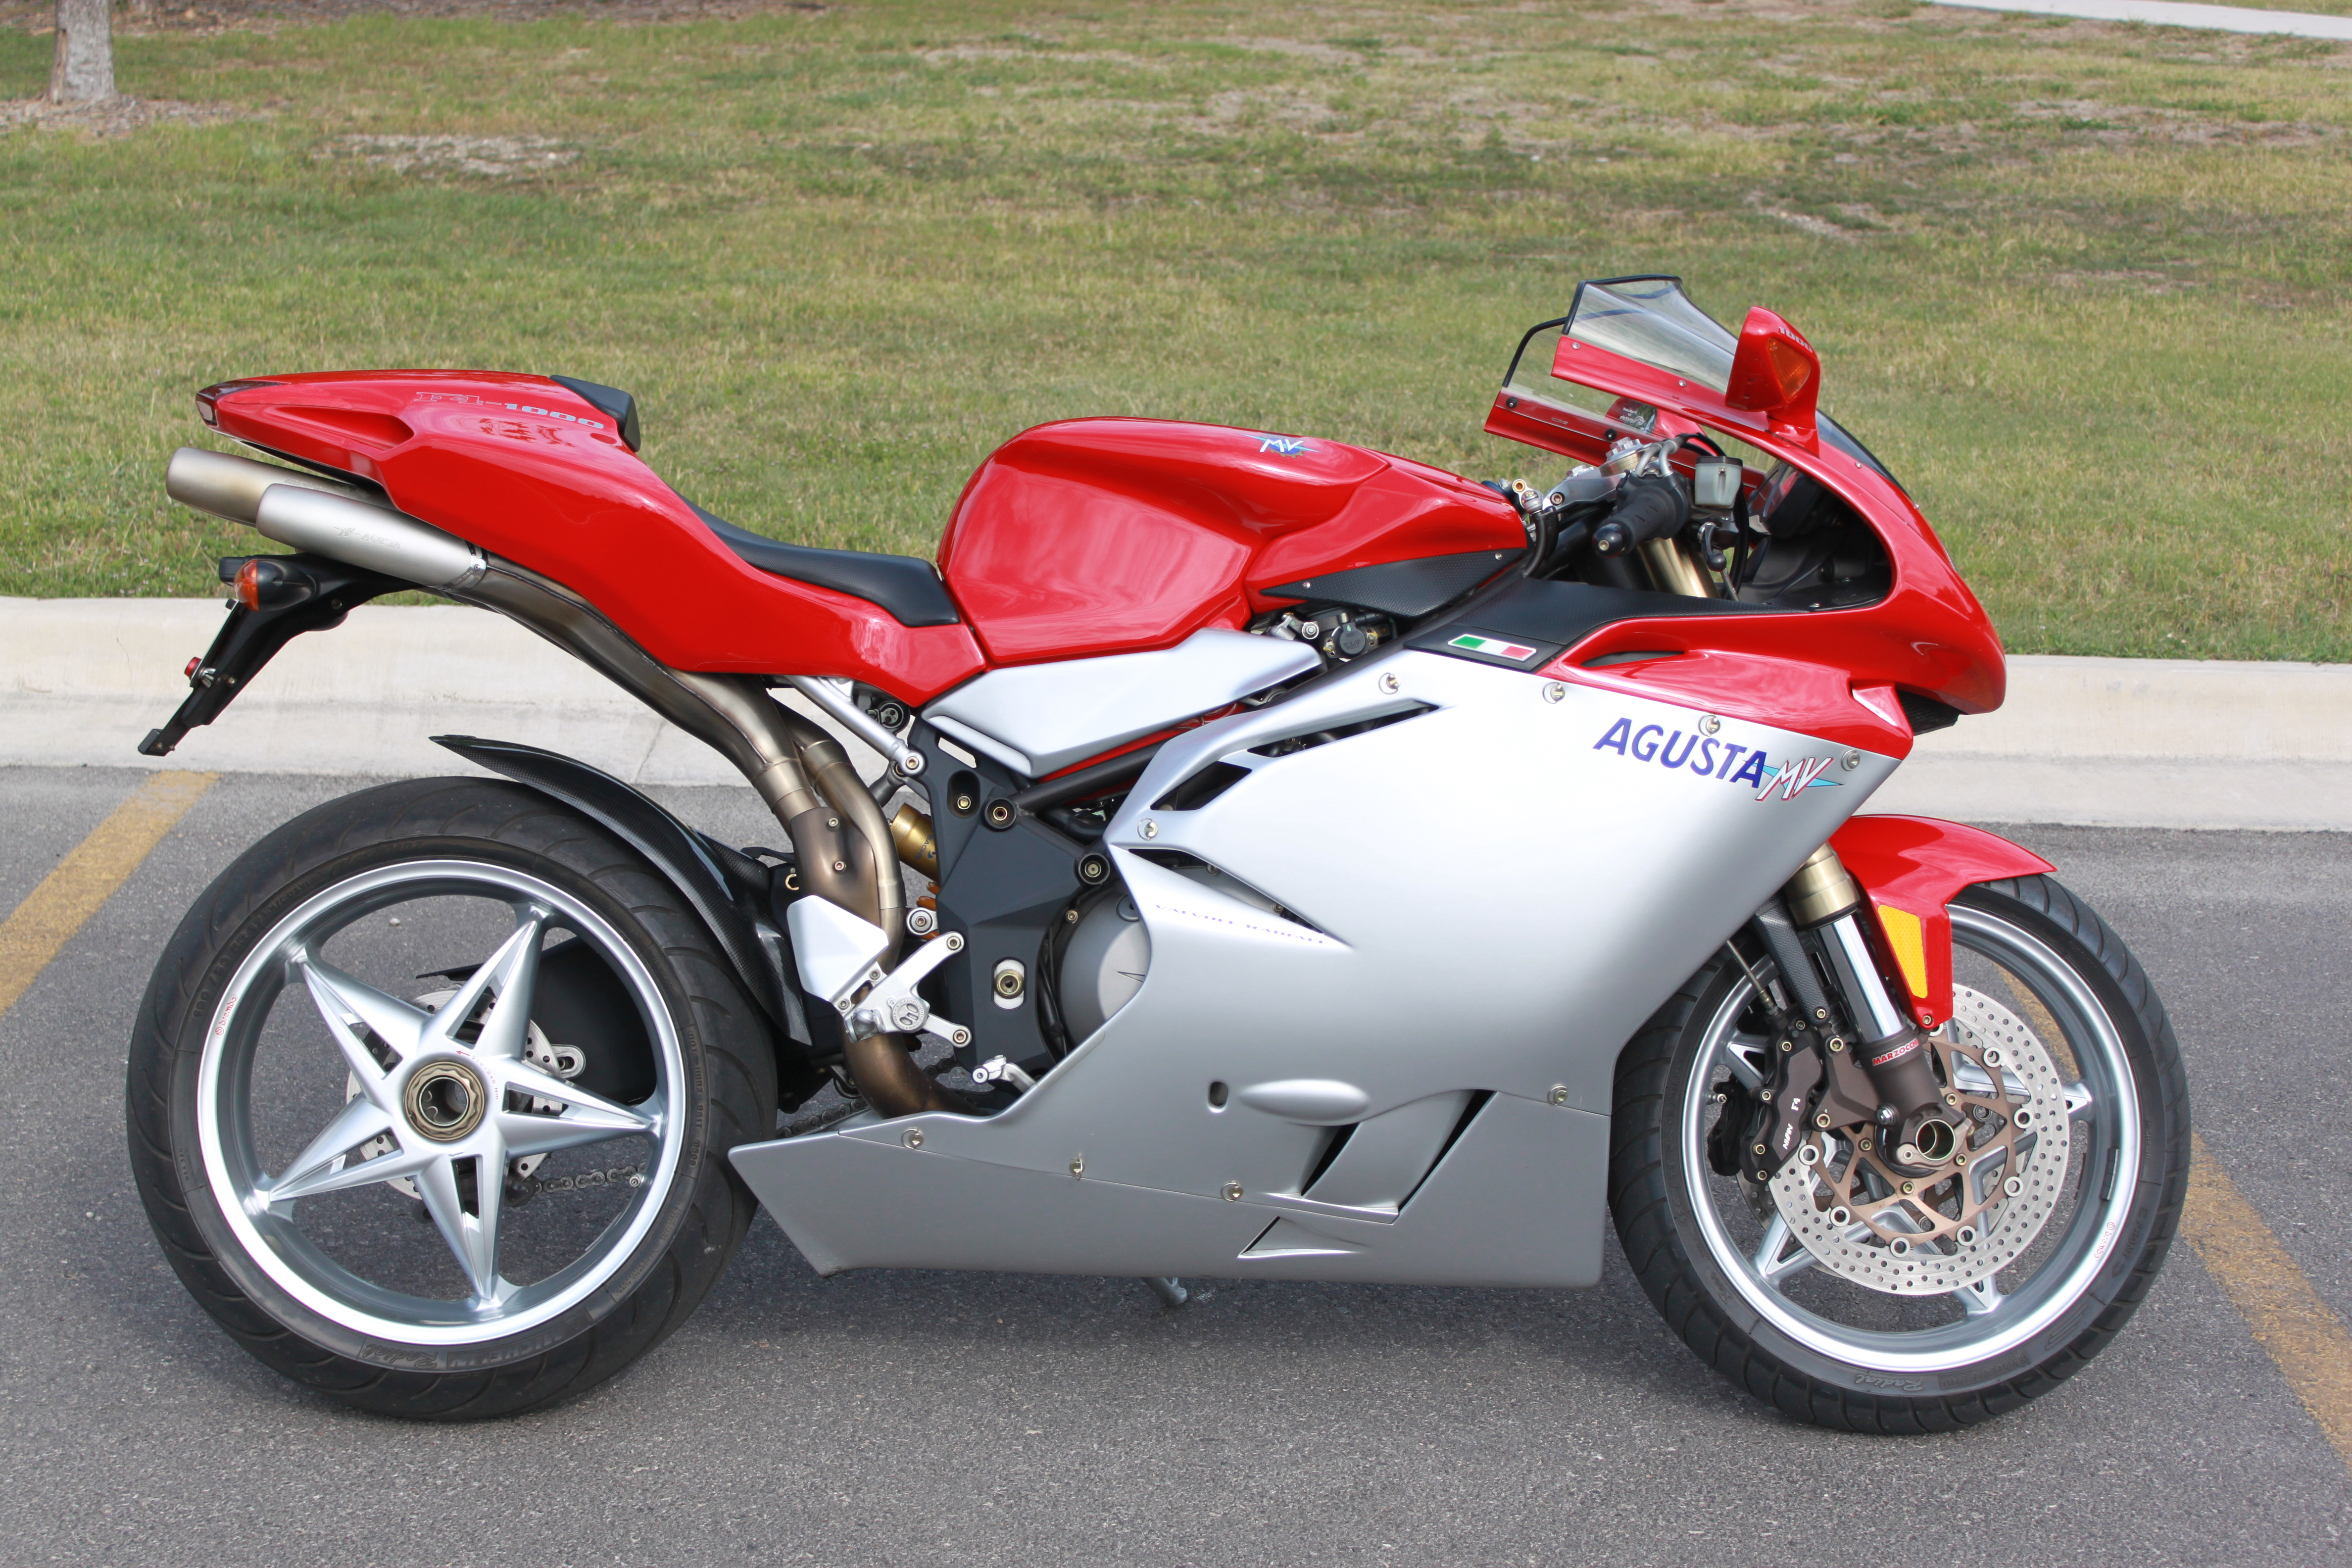 MV Agusta F4 1000 S 1+1 2006 images #114178